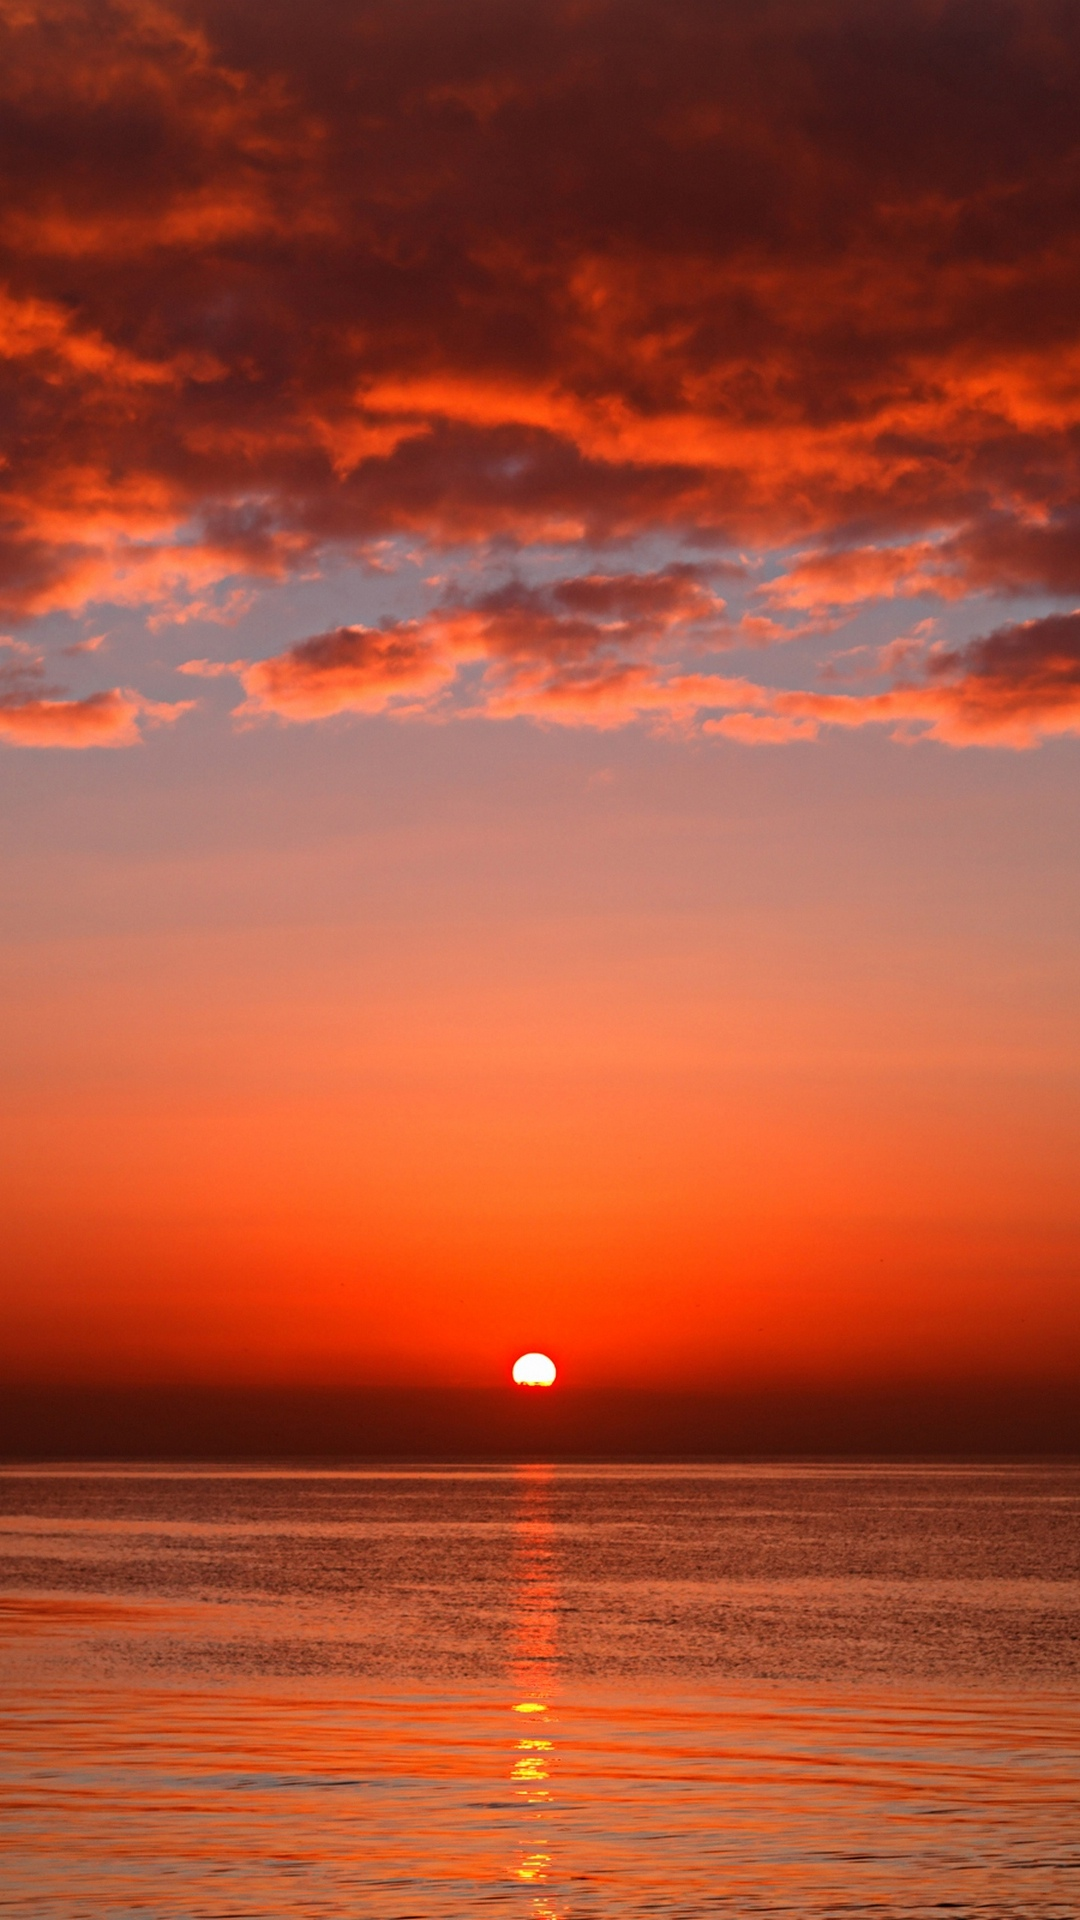 Samsung Galaxy J7 Wallpapers: Last Sunset Android Wallpapers